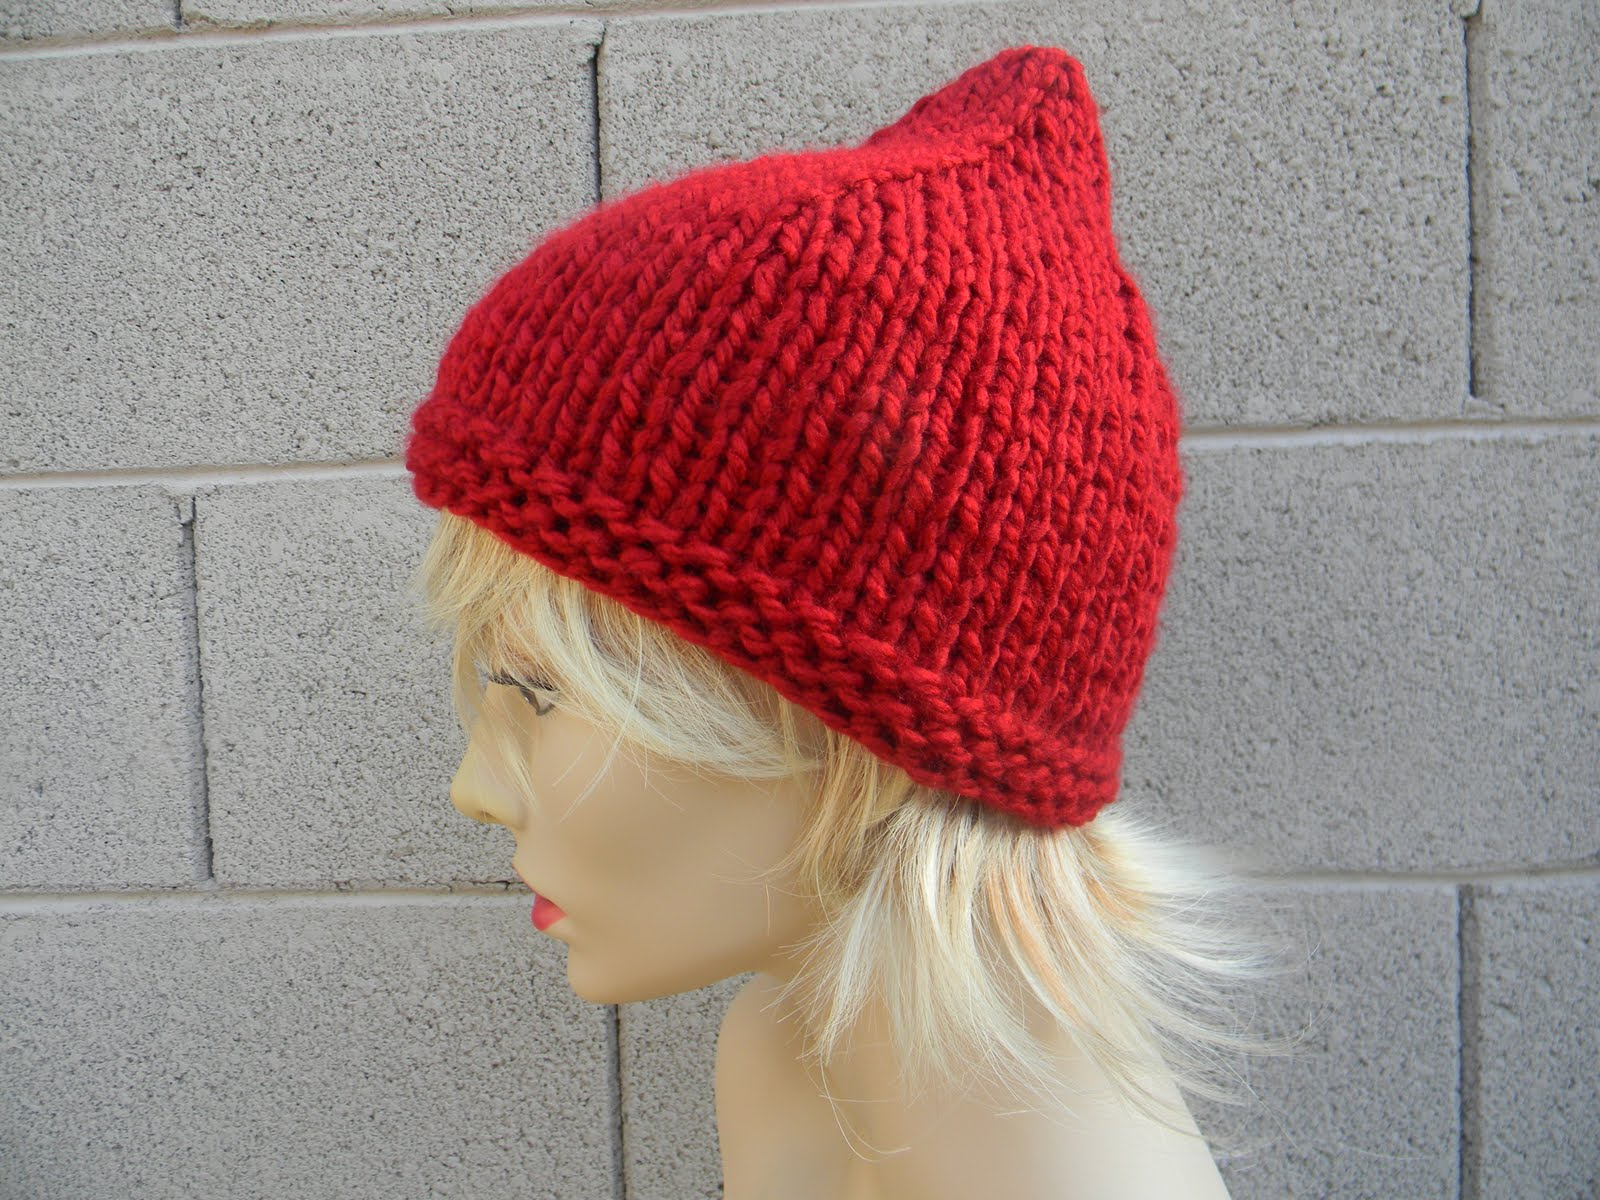 9b9e36fccd9 Louise Knits  Easy pointy Pixie hat